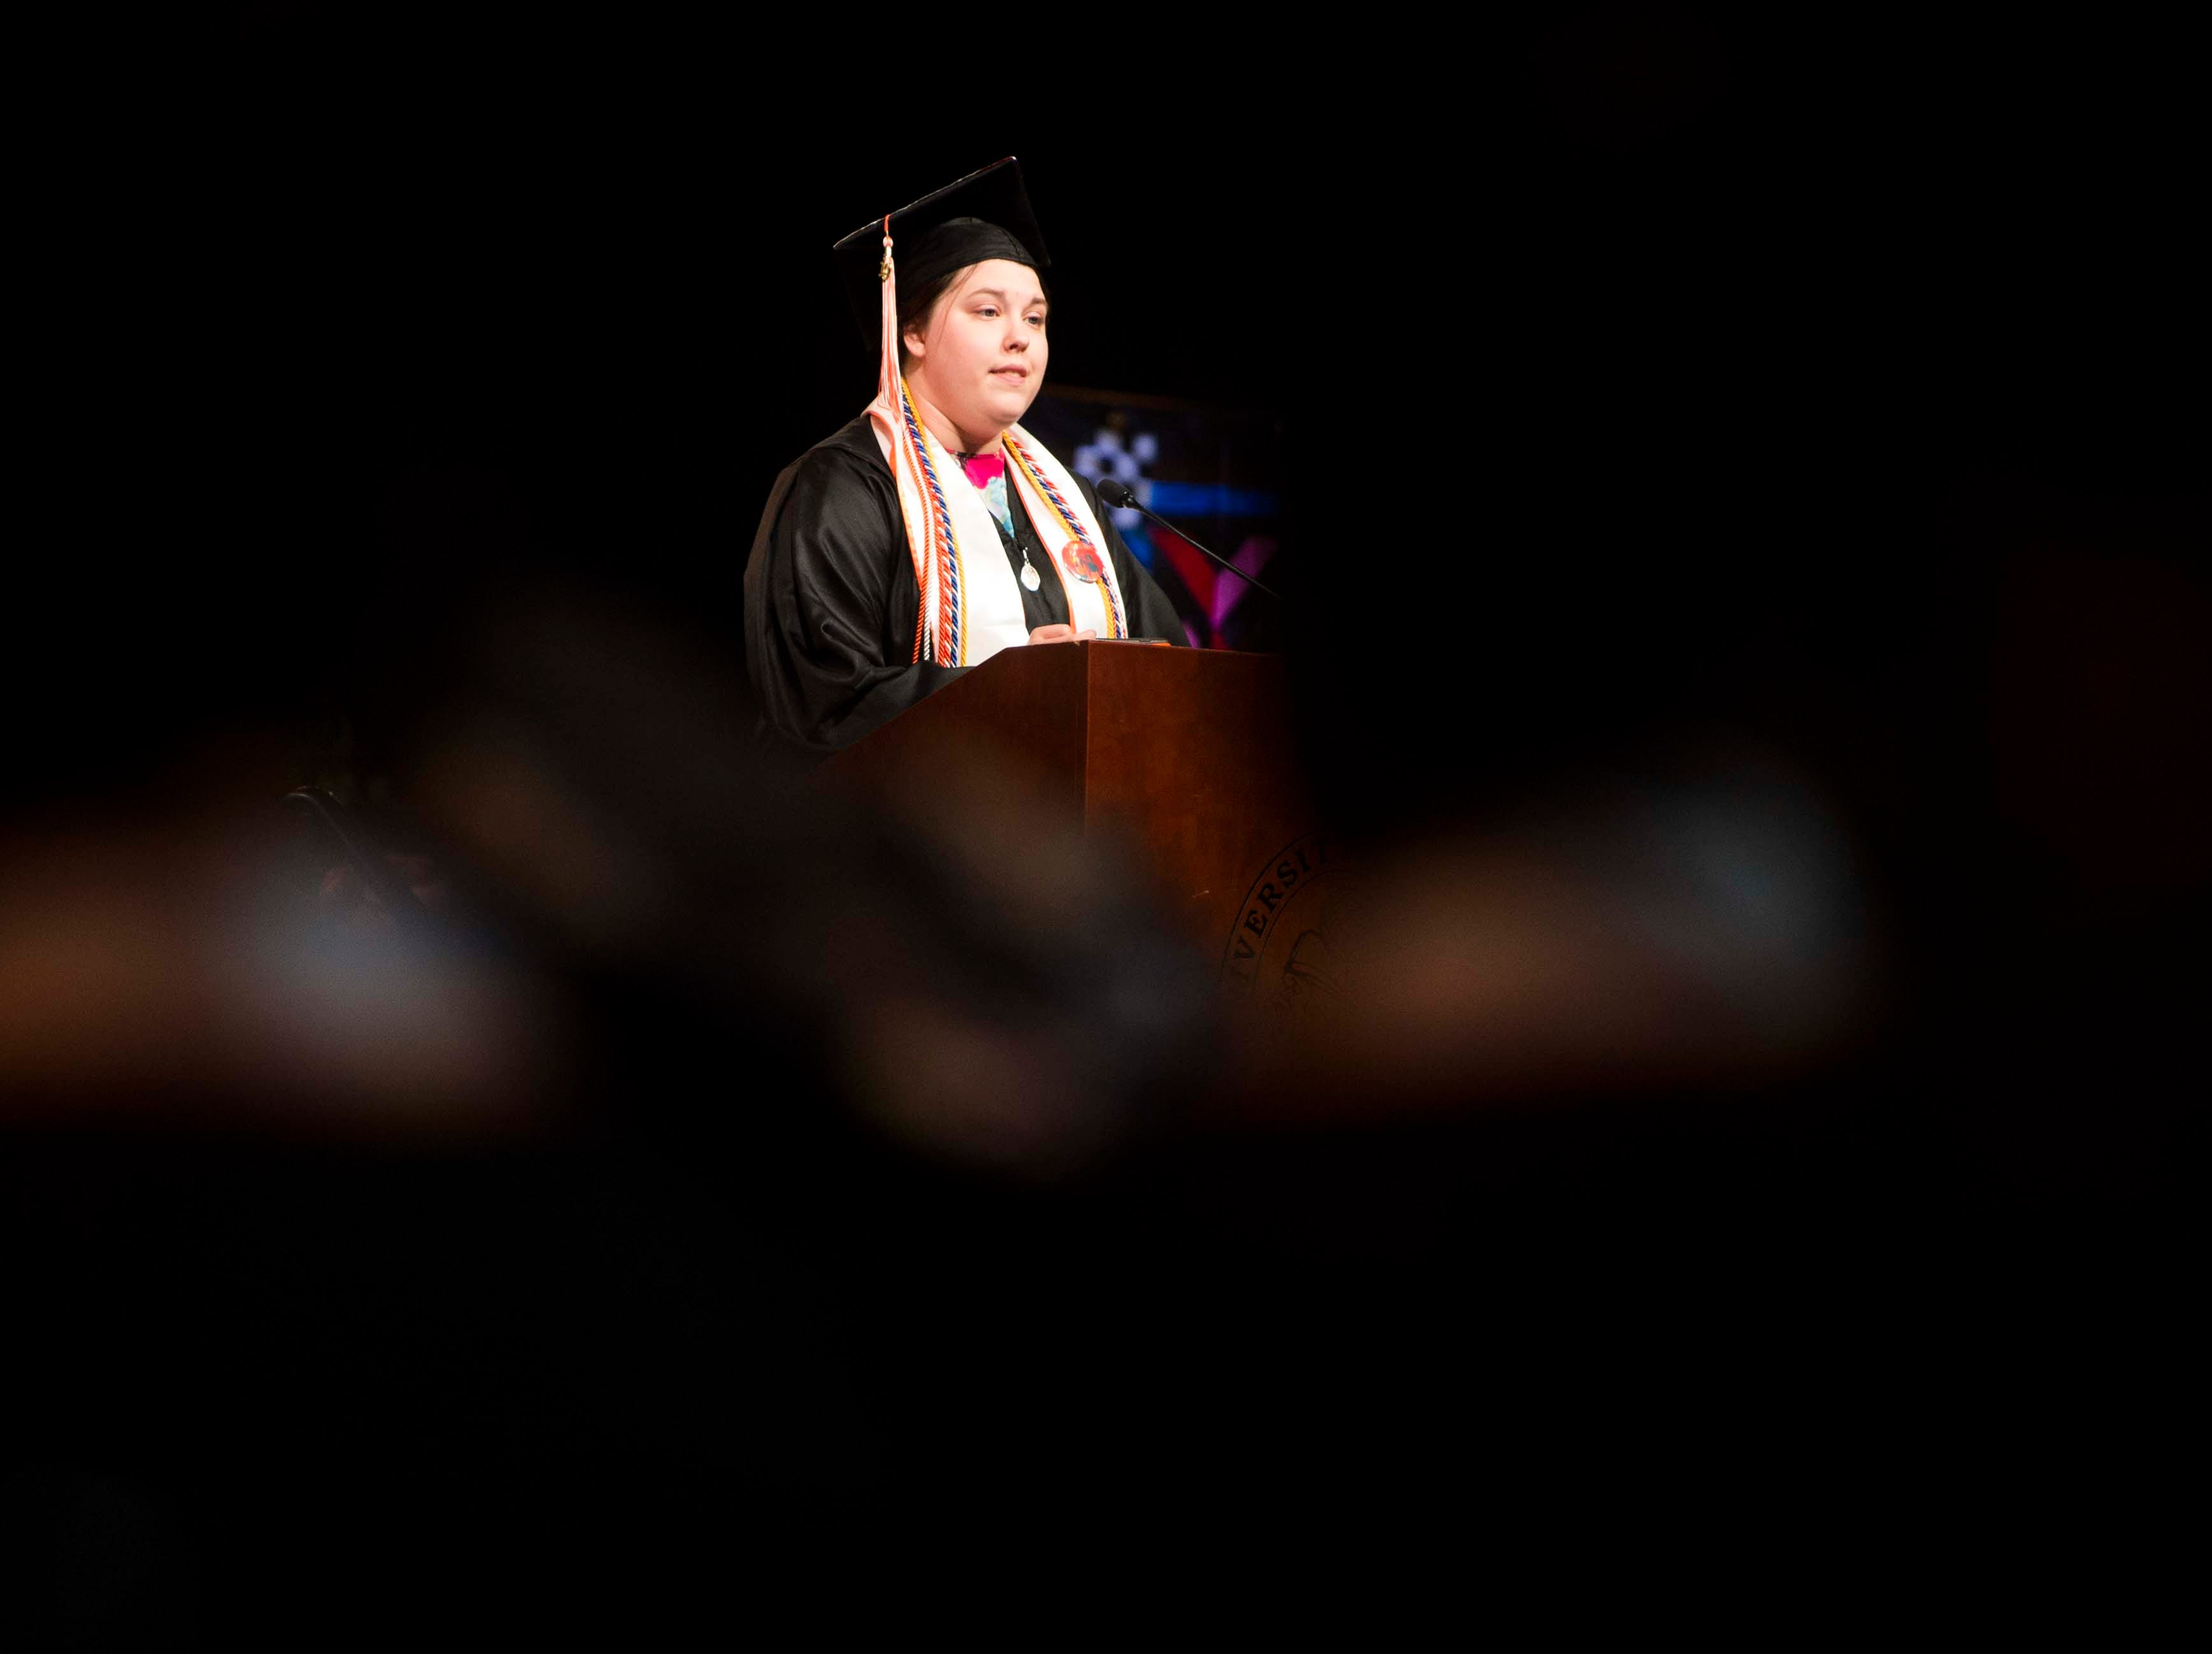 Hannah Nelsen speaks during University of Tennessee's College of Arts and Sciences commencement in Thompson-Boling arena in Knoxville, Saturday, May 11, 2019.